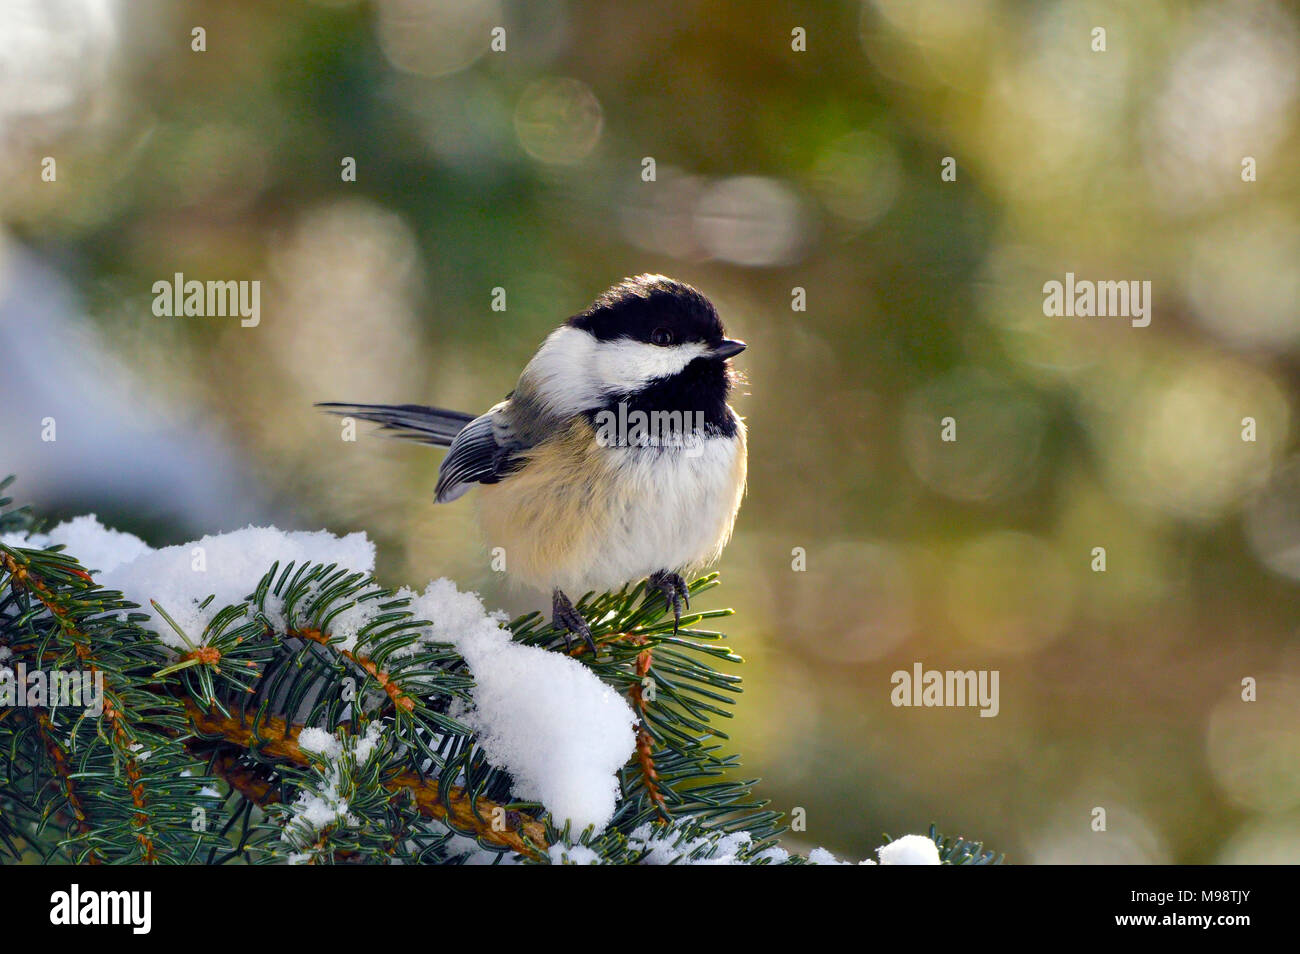 A front view image of a black-capped chickadee bird ( Parus gambeli); perched on a tree branch in rural Alberta Canada. - Stock Image